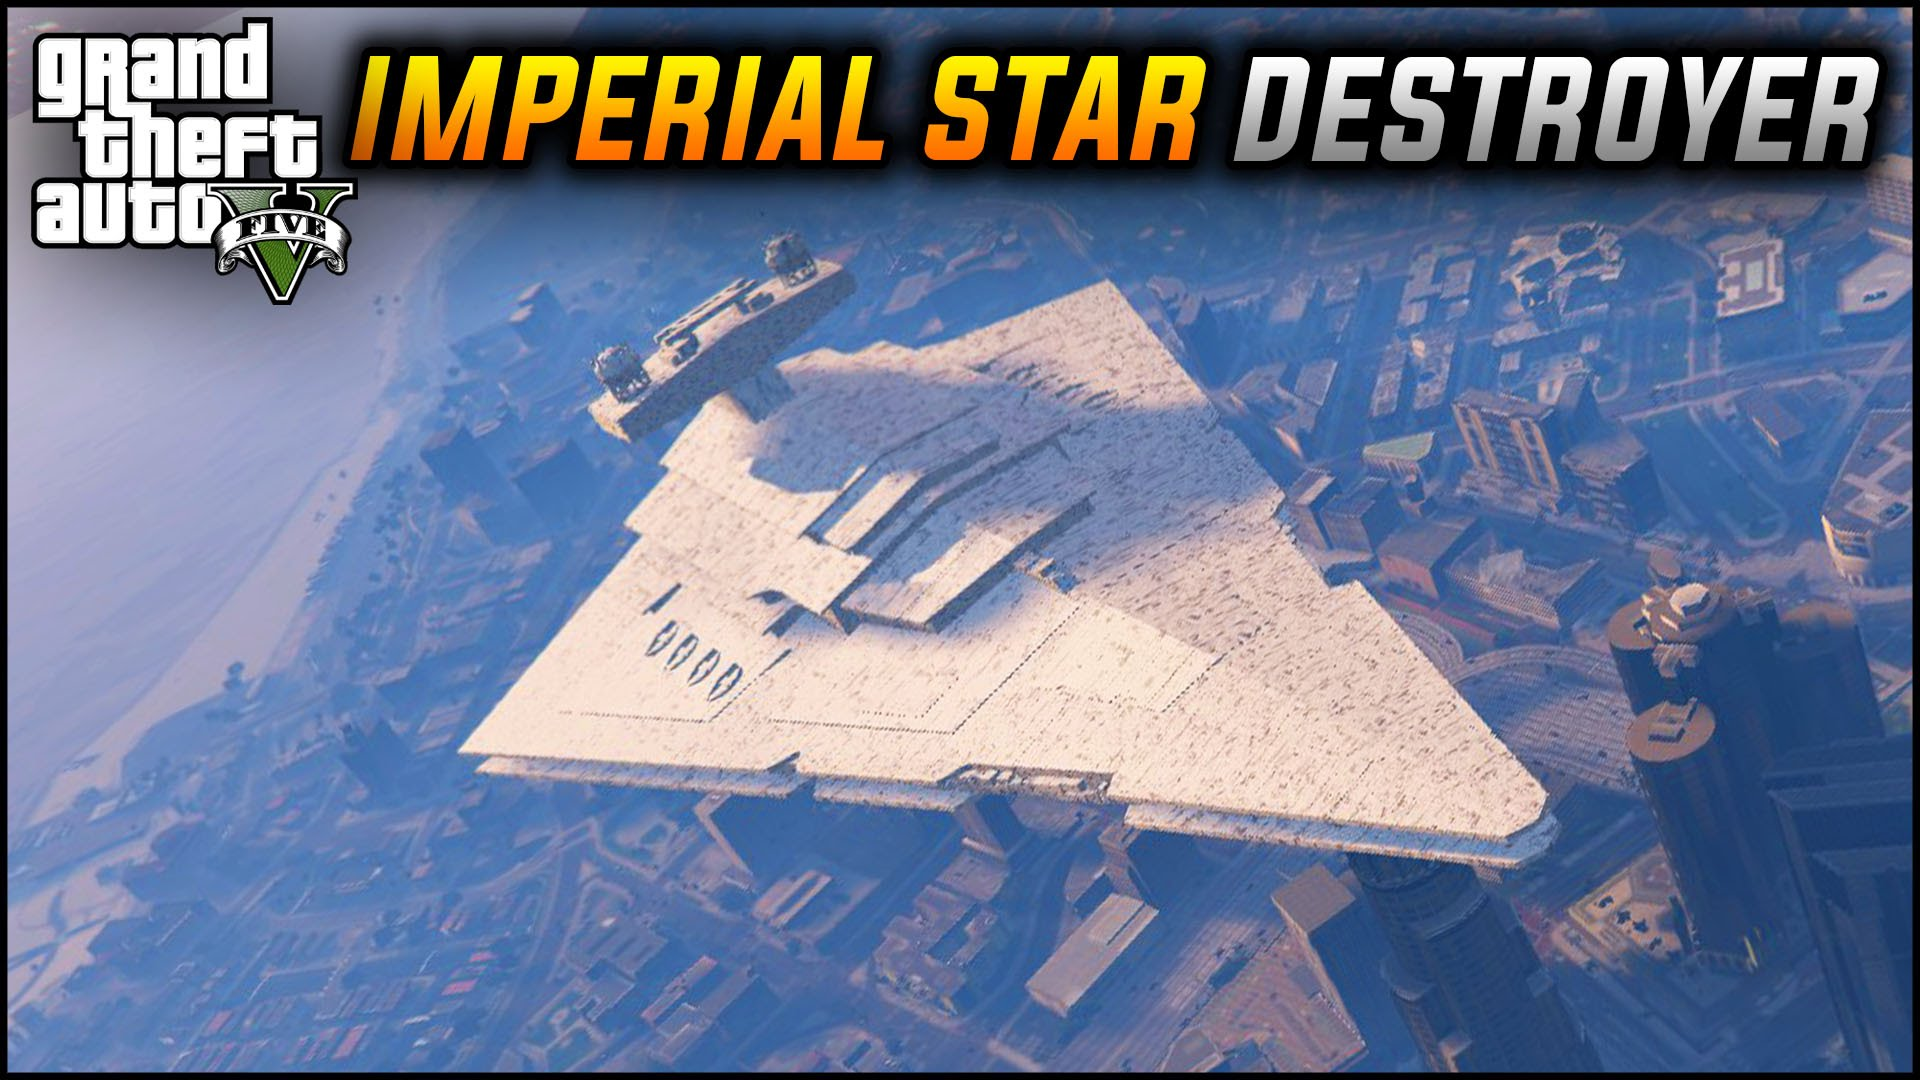 A 'Grand Theft Auto V' PC Mod That Brings an Imperial Star